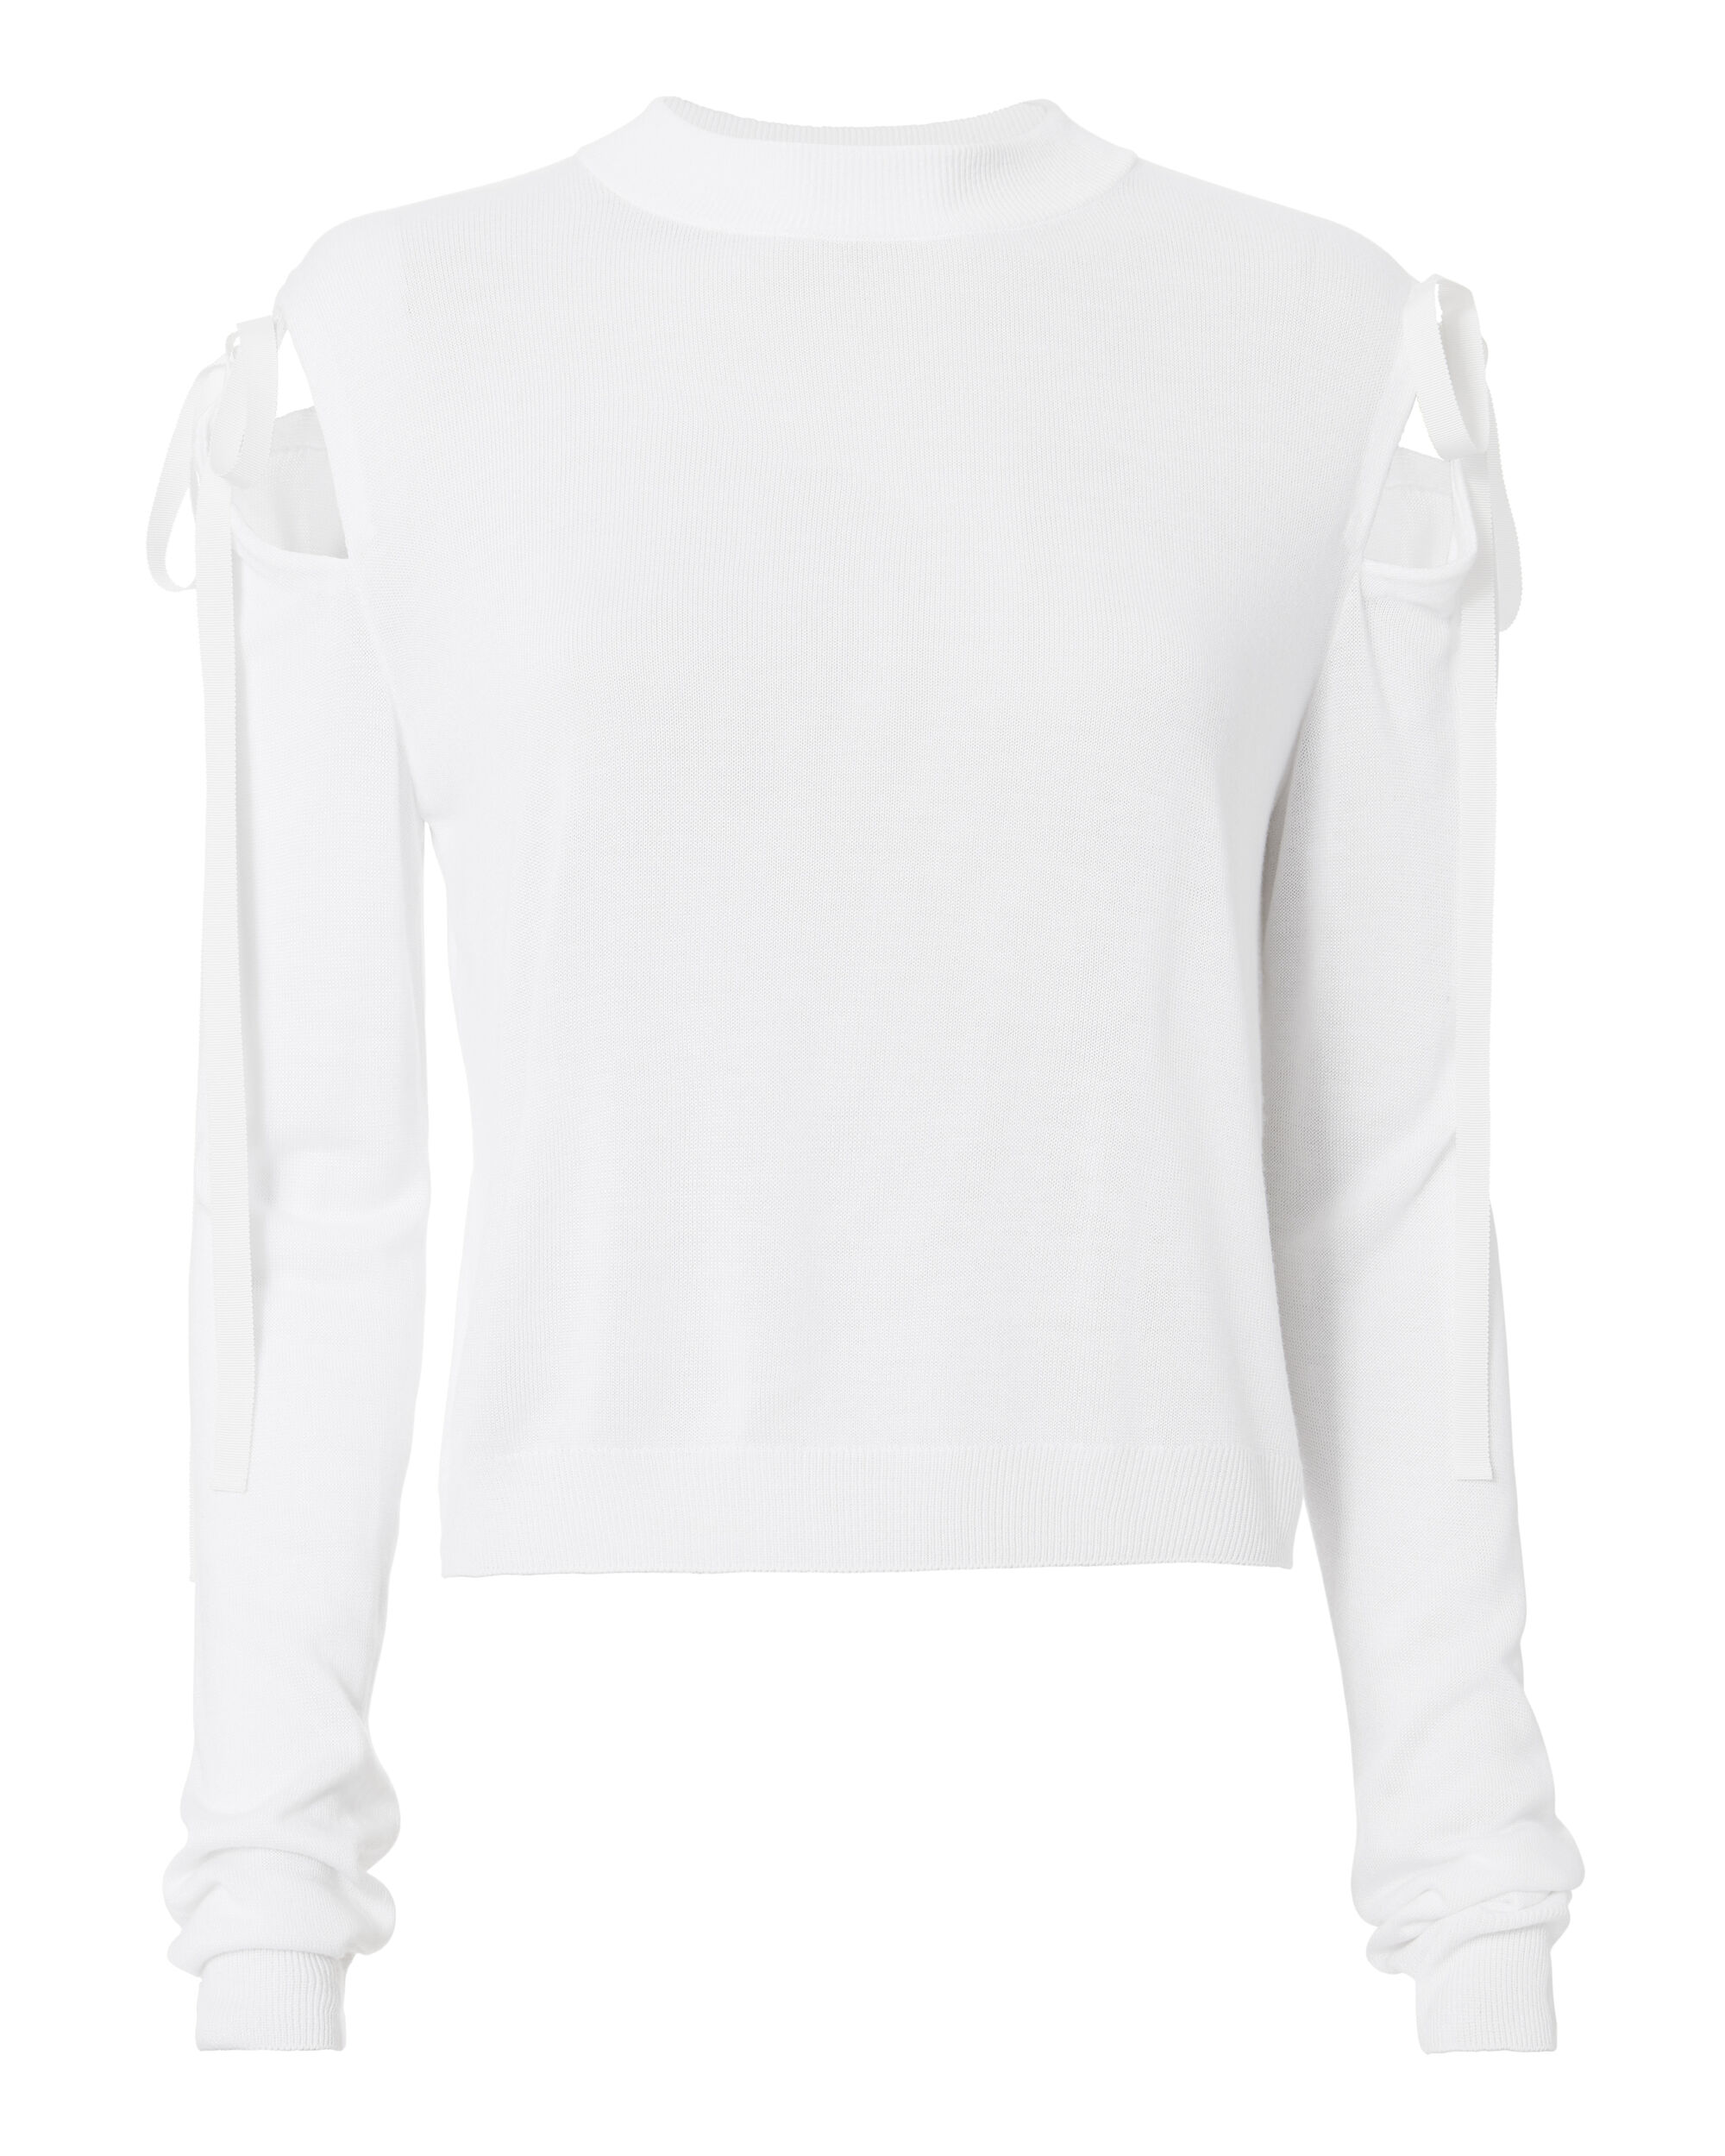 Ribbon Tie Knit Top, WHITE, hi-res